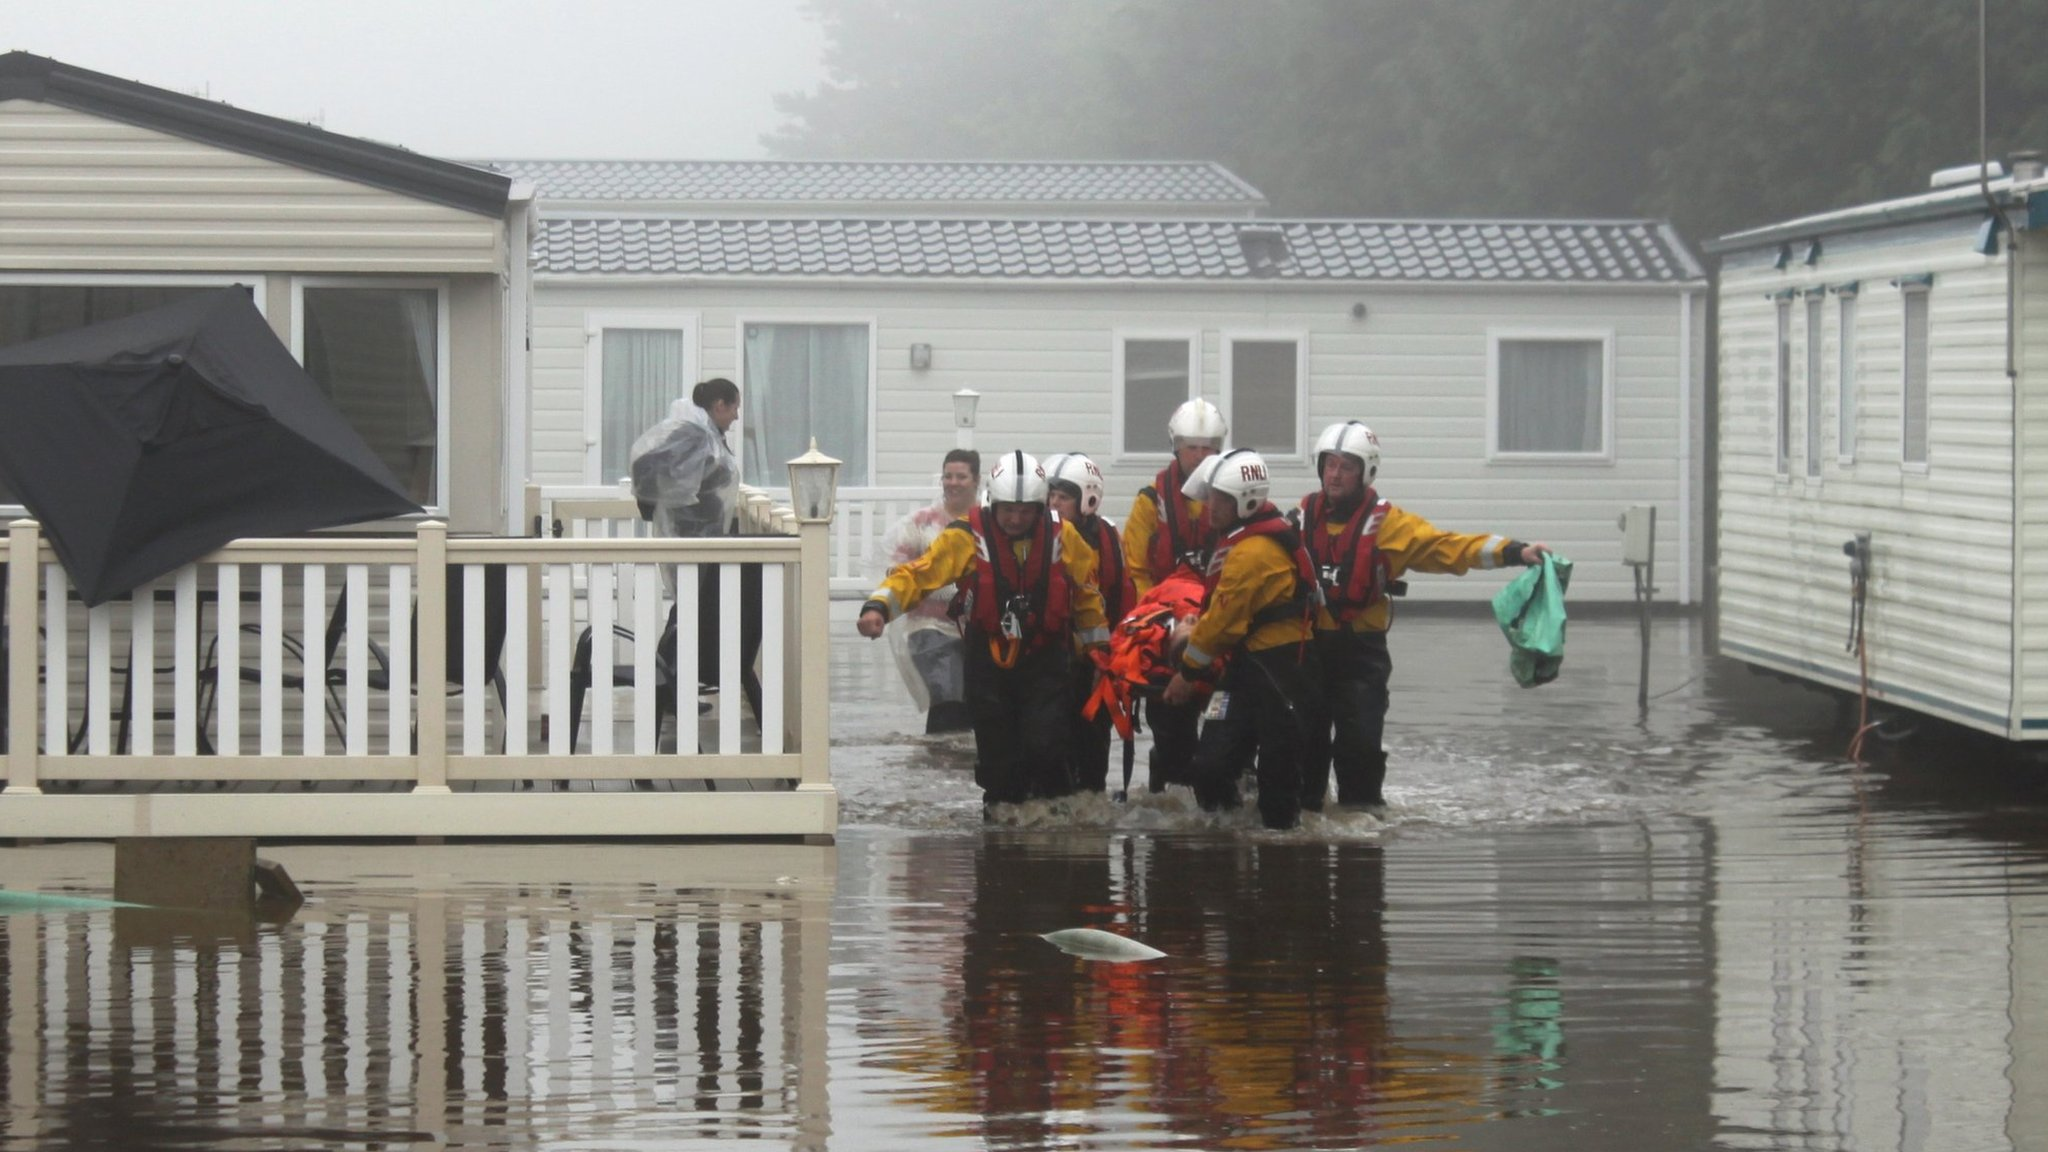 Lifeboat crew rescuing people from static caravan